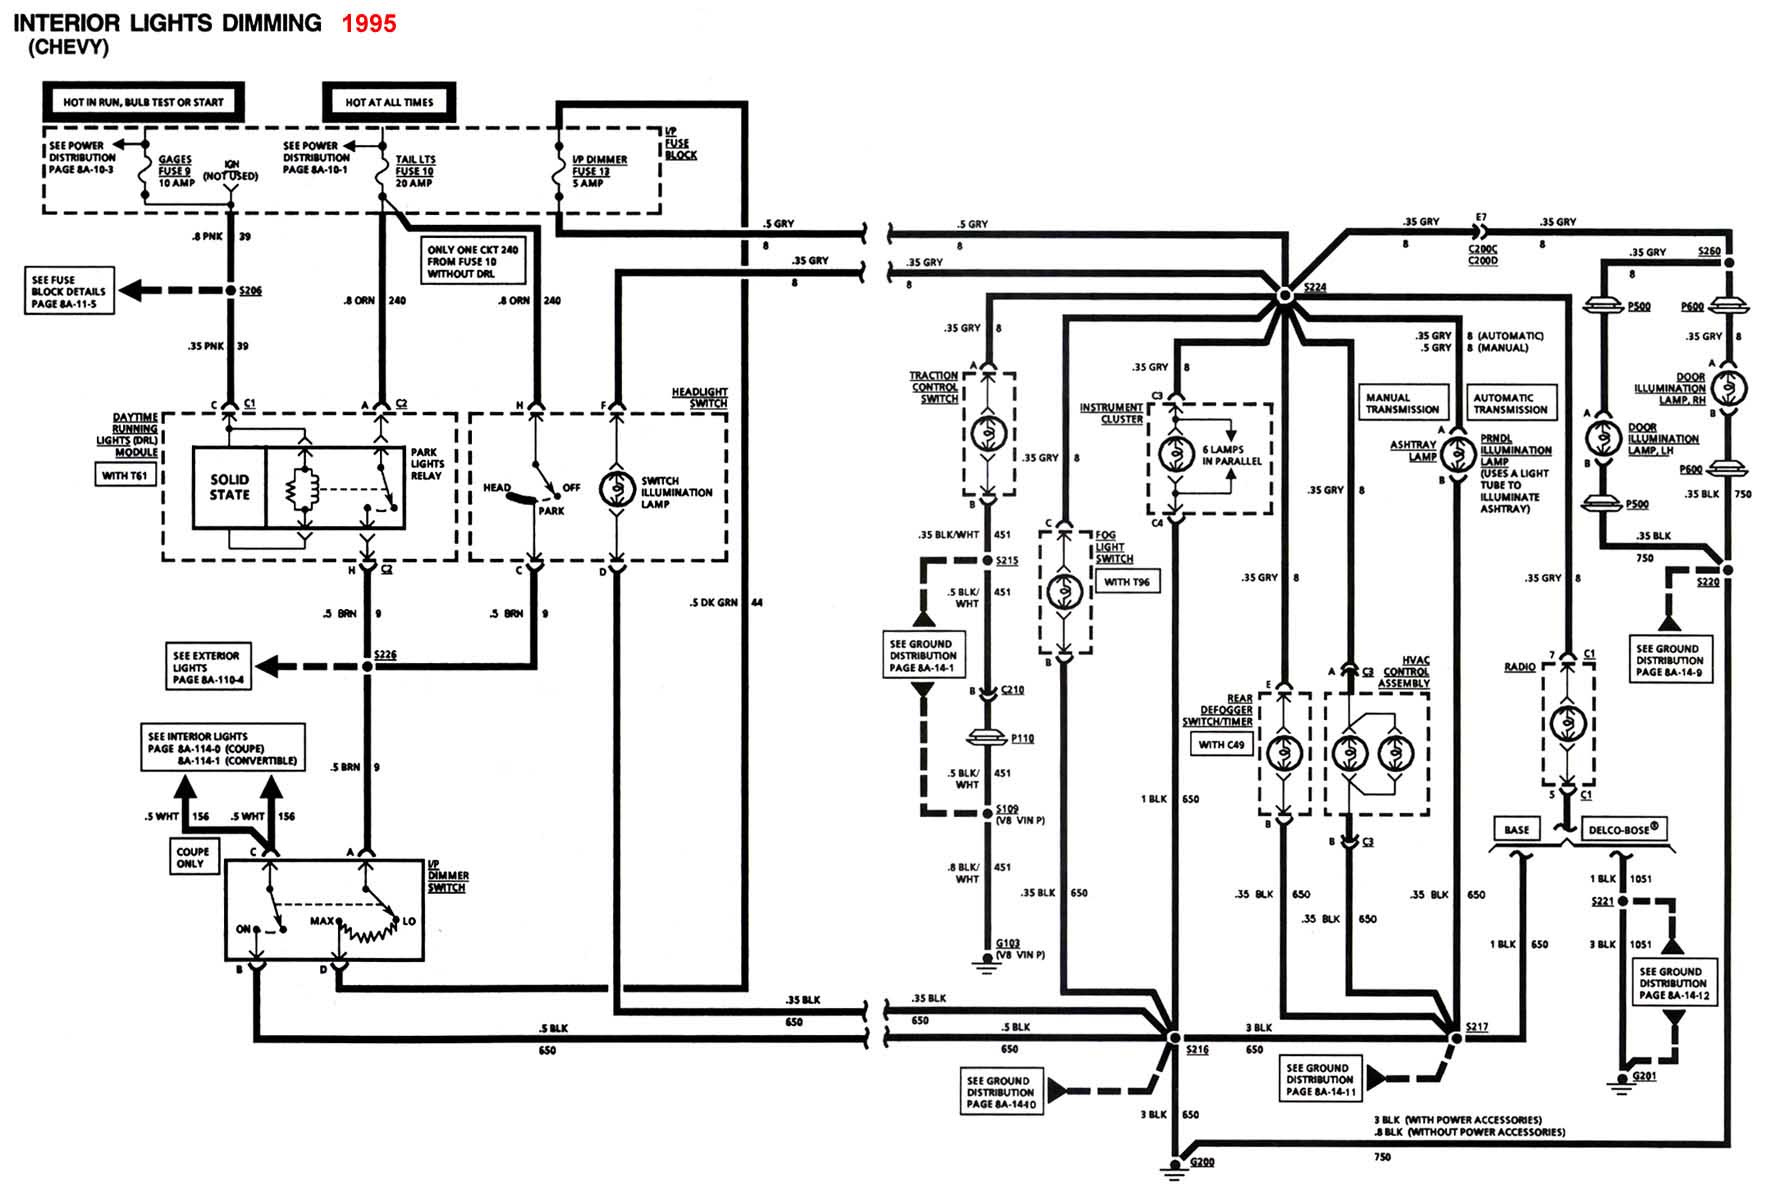 hight resolution of 1995 chevy camaro wiring schematic wiring diagram schematics rh ksefanzone com 97 camaro ignition switch wiring